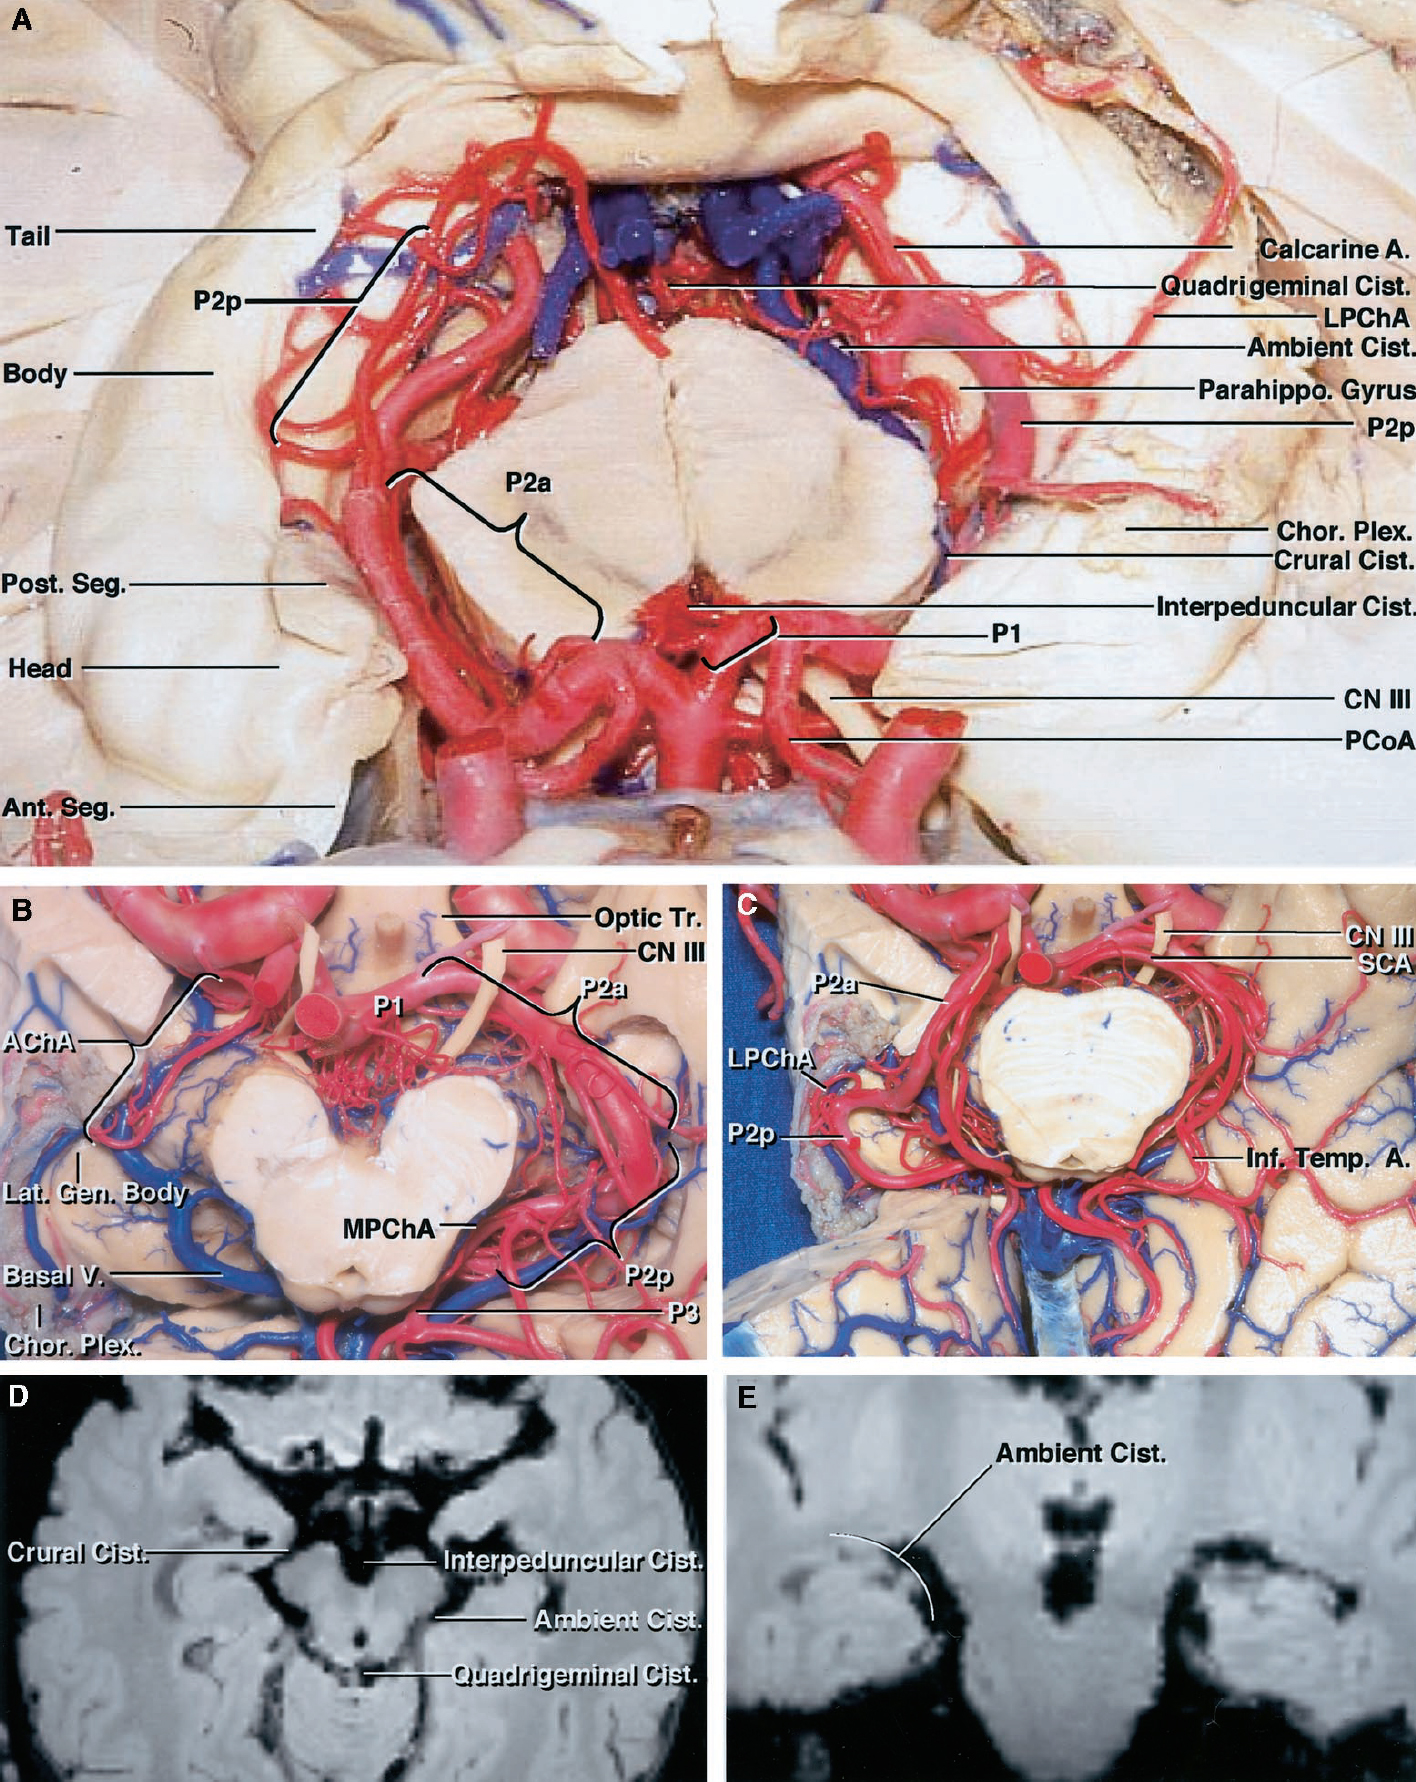 "Figure 1. A, specimen showing superior view of the perimesencephalic cisterns. The perimesencephalic cisterns include the interpeduncular, crural, ambient, and quadrigeminal cisterns surrounding the midbrain. The interpeduncular cistern lies between the cerebral peduncles. The crural cistern lies between the posterior segment of the uncus and the cerebral peduncle. The ambient cistern extends from the posterior edge of the crural cistern to the lateral edge of the midbrain colliculi. The head, body, and tail of the hippocampus and the choroid plexus are exposed in the floor of the temporal horn. Note how the right P2p courses above the medial edge of the parahippocampal gyrus, whereas the left P2p courses medial to the gyrus. B, specimen showing inferior view of the basal cisterns. The right P2a and P2p have been removed to expose the roof of the crural and ambient cisterns. The lower part of the temporal lobe has been removed to expose the temporal horn and basal cisterns. The anterior choroidal artery enters the choroid plexus in the temporal horn. The lateral geniculate body and optic tract sit in the roof of the cisterns. The P1, P2, and P3 segments; inferior temporal branches; and medial posterior and lateral posterior choroidal arteries are exposed. C, specimen showing anterior inferior temporal lobe below the choroidal fissure removed to expose the relationship between the P2p and choroidal fissure. The choroidal fissure begins at the posterior edge of the posterior uncal segment at the site where the anterior choroidal artery enters the temporal horn to become the plexal portion. Note how the right P2 ascends and courses laterally to reach the upper surface of the medial edge of the parahippocampal gyrus in close proximity to the choroidal fissure. D, axial magnetic resonance imaging scan of a cadaver using the Stealth workstation demonstrating the segments of the perimesencephalic cisterns. E, coronal magnetic resonance imaging scan demonstrates the ""C"" shape of the ambient cistern. A., artery; AChA, anterior choroidal artery; Ant. Seg., anterior segment of uncus; Basal V., basal vein; Body, body of hippocampus; Chor. Plex., choroid plexus; Cist., cistern; CN III, oculomotor nerve; Head, head of hippocampus; Inf. Temp. A., inferior temporal artery; Lat. Gen. Body, lateral geniculate body; LPChA, lateral posterior choroidal artery; MPChA, medial posterior choroidal artery; Optic Tr., optic tract; Parahippo. Gyrus, parahippocampal gyrus; PCoA, posterior communicating artery; Post. Seg., posterior segment of uncus; SCA, superior cerebellar artery; Tail, tail of hippocampus. (Images courtesy of AL Rhoton, Jr.)"